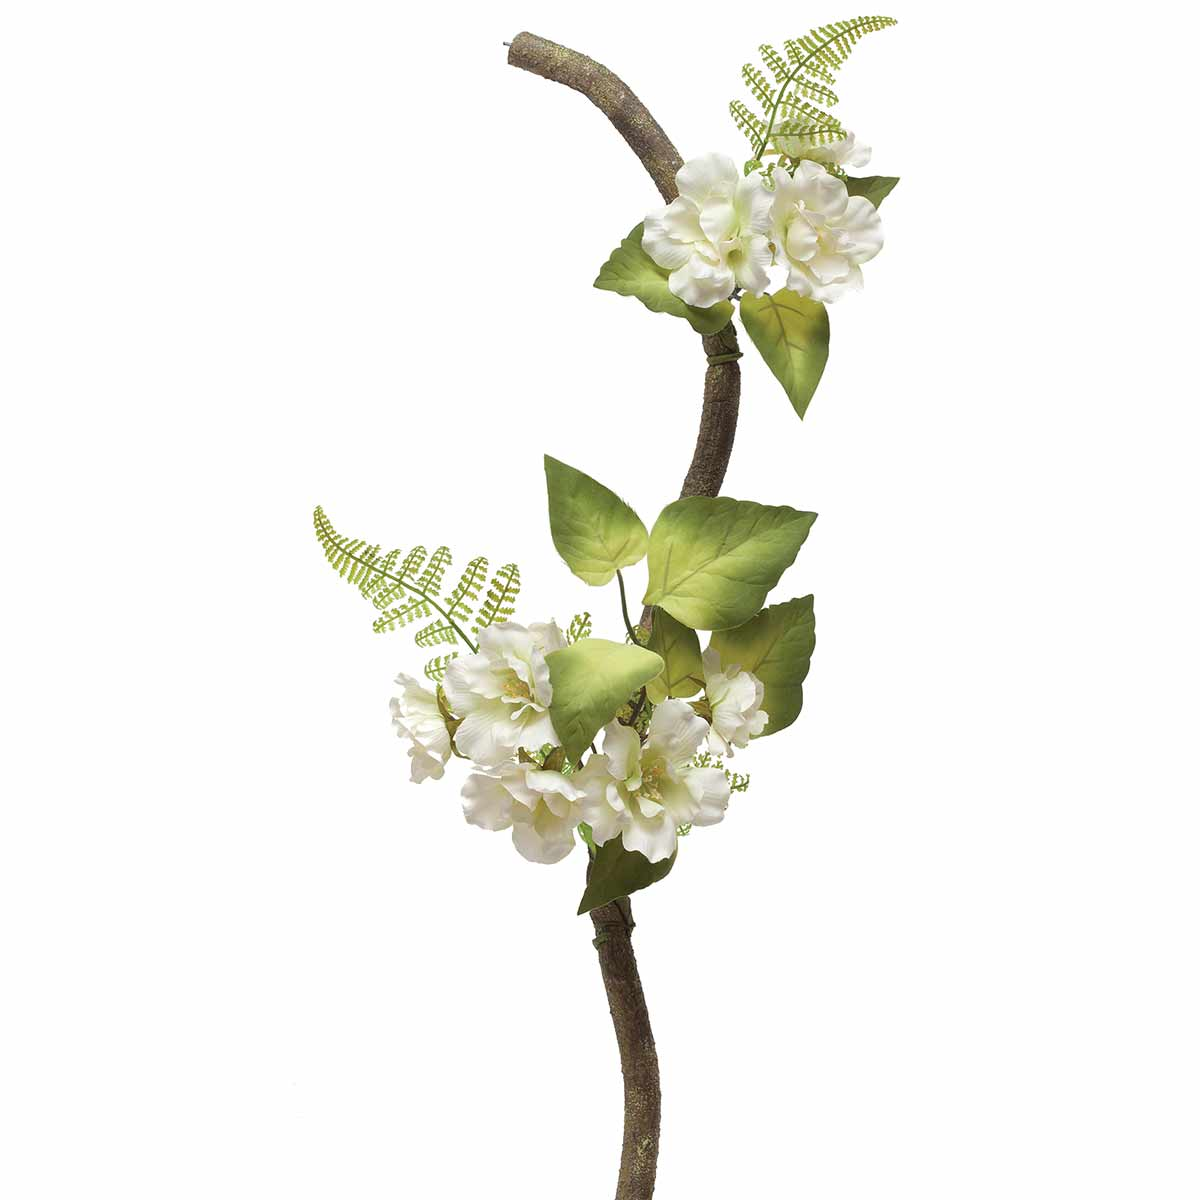 ORCHARD BLOSSOM BRANCH